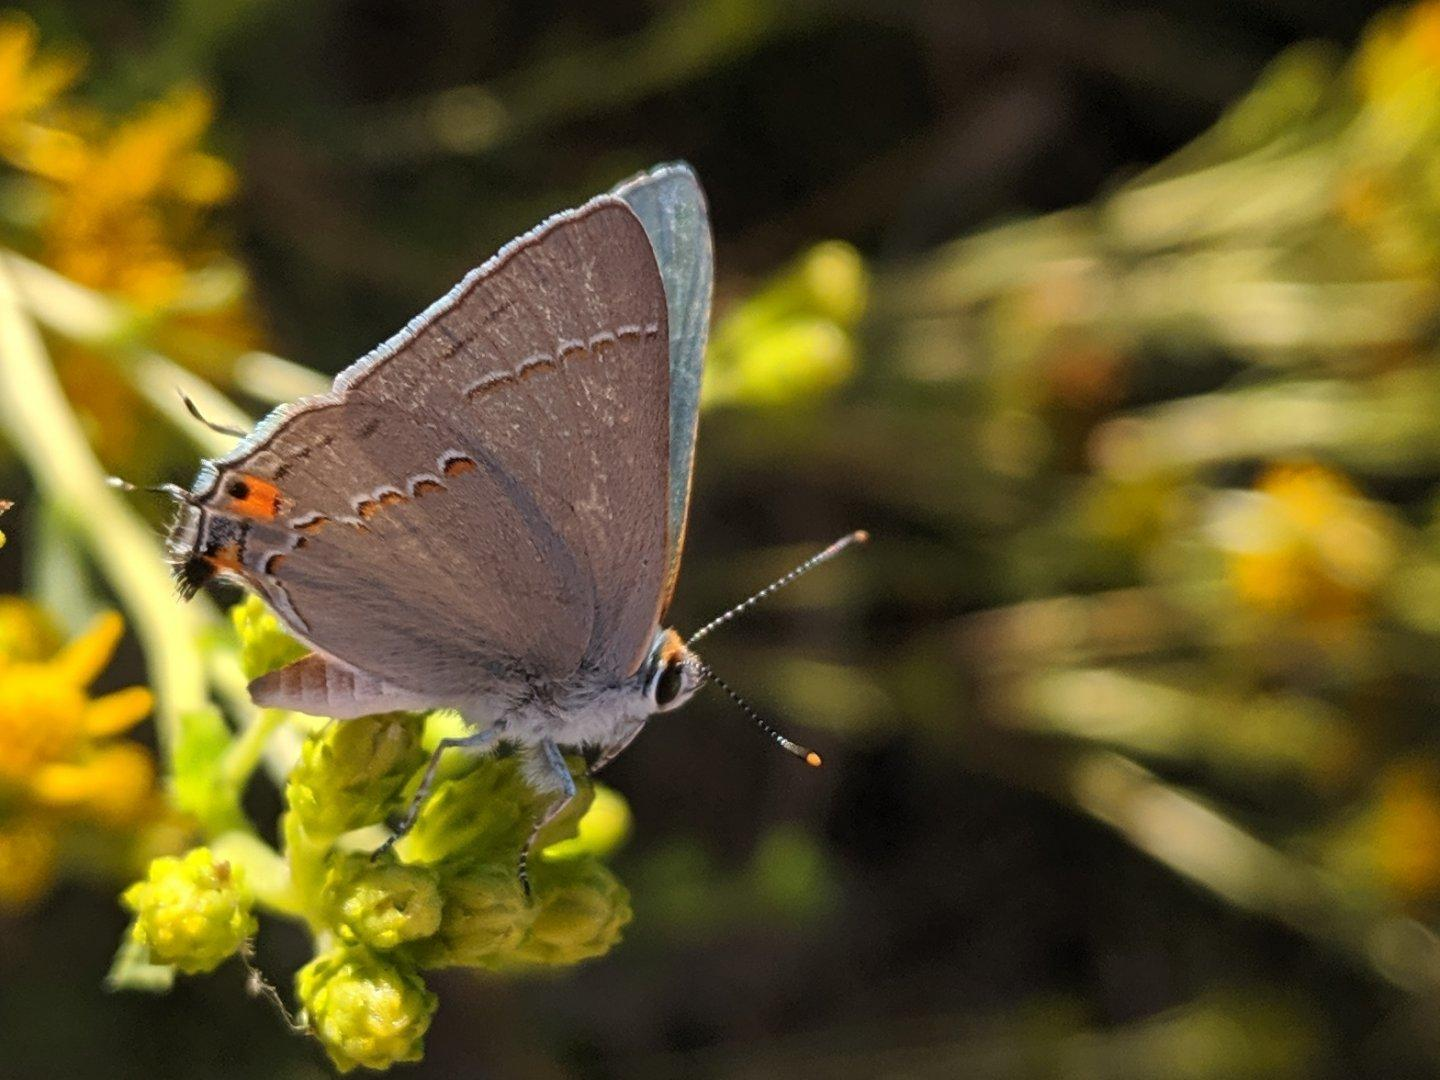 A #GrayHairstreak #butterfly. Not the one from the previous photo, but another one spotted on the same hike. #nature